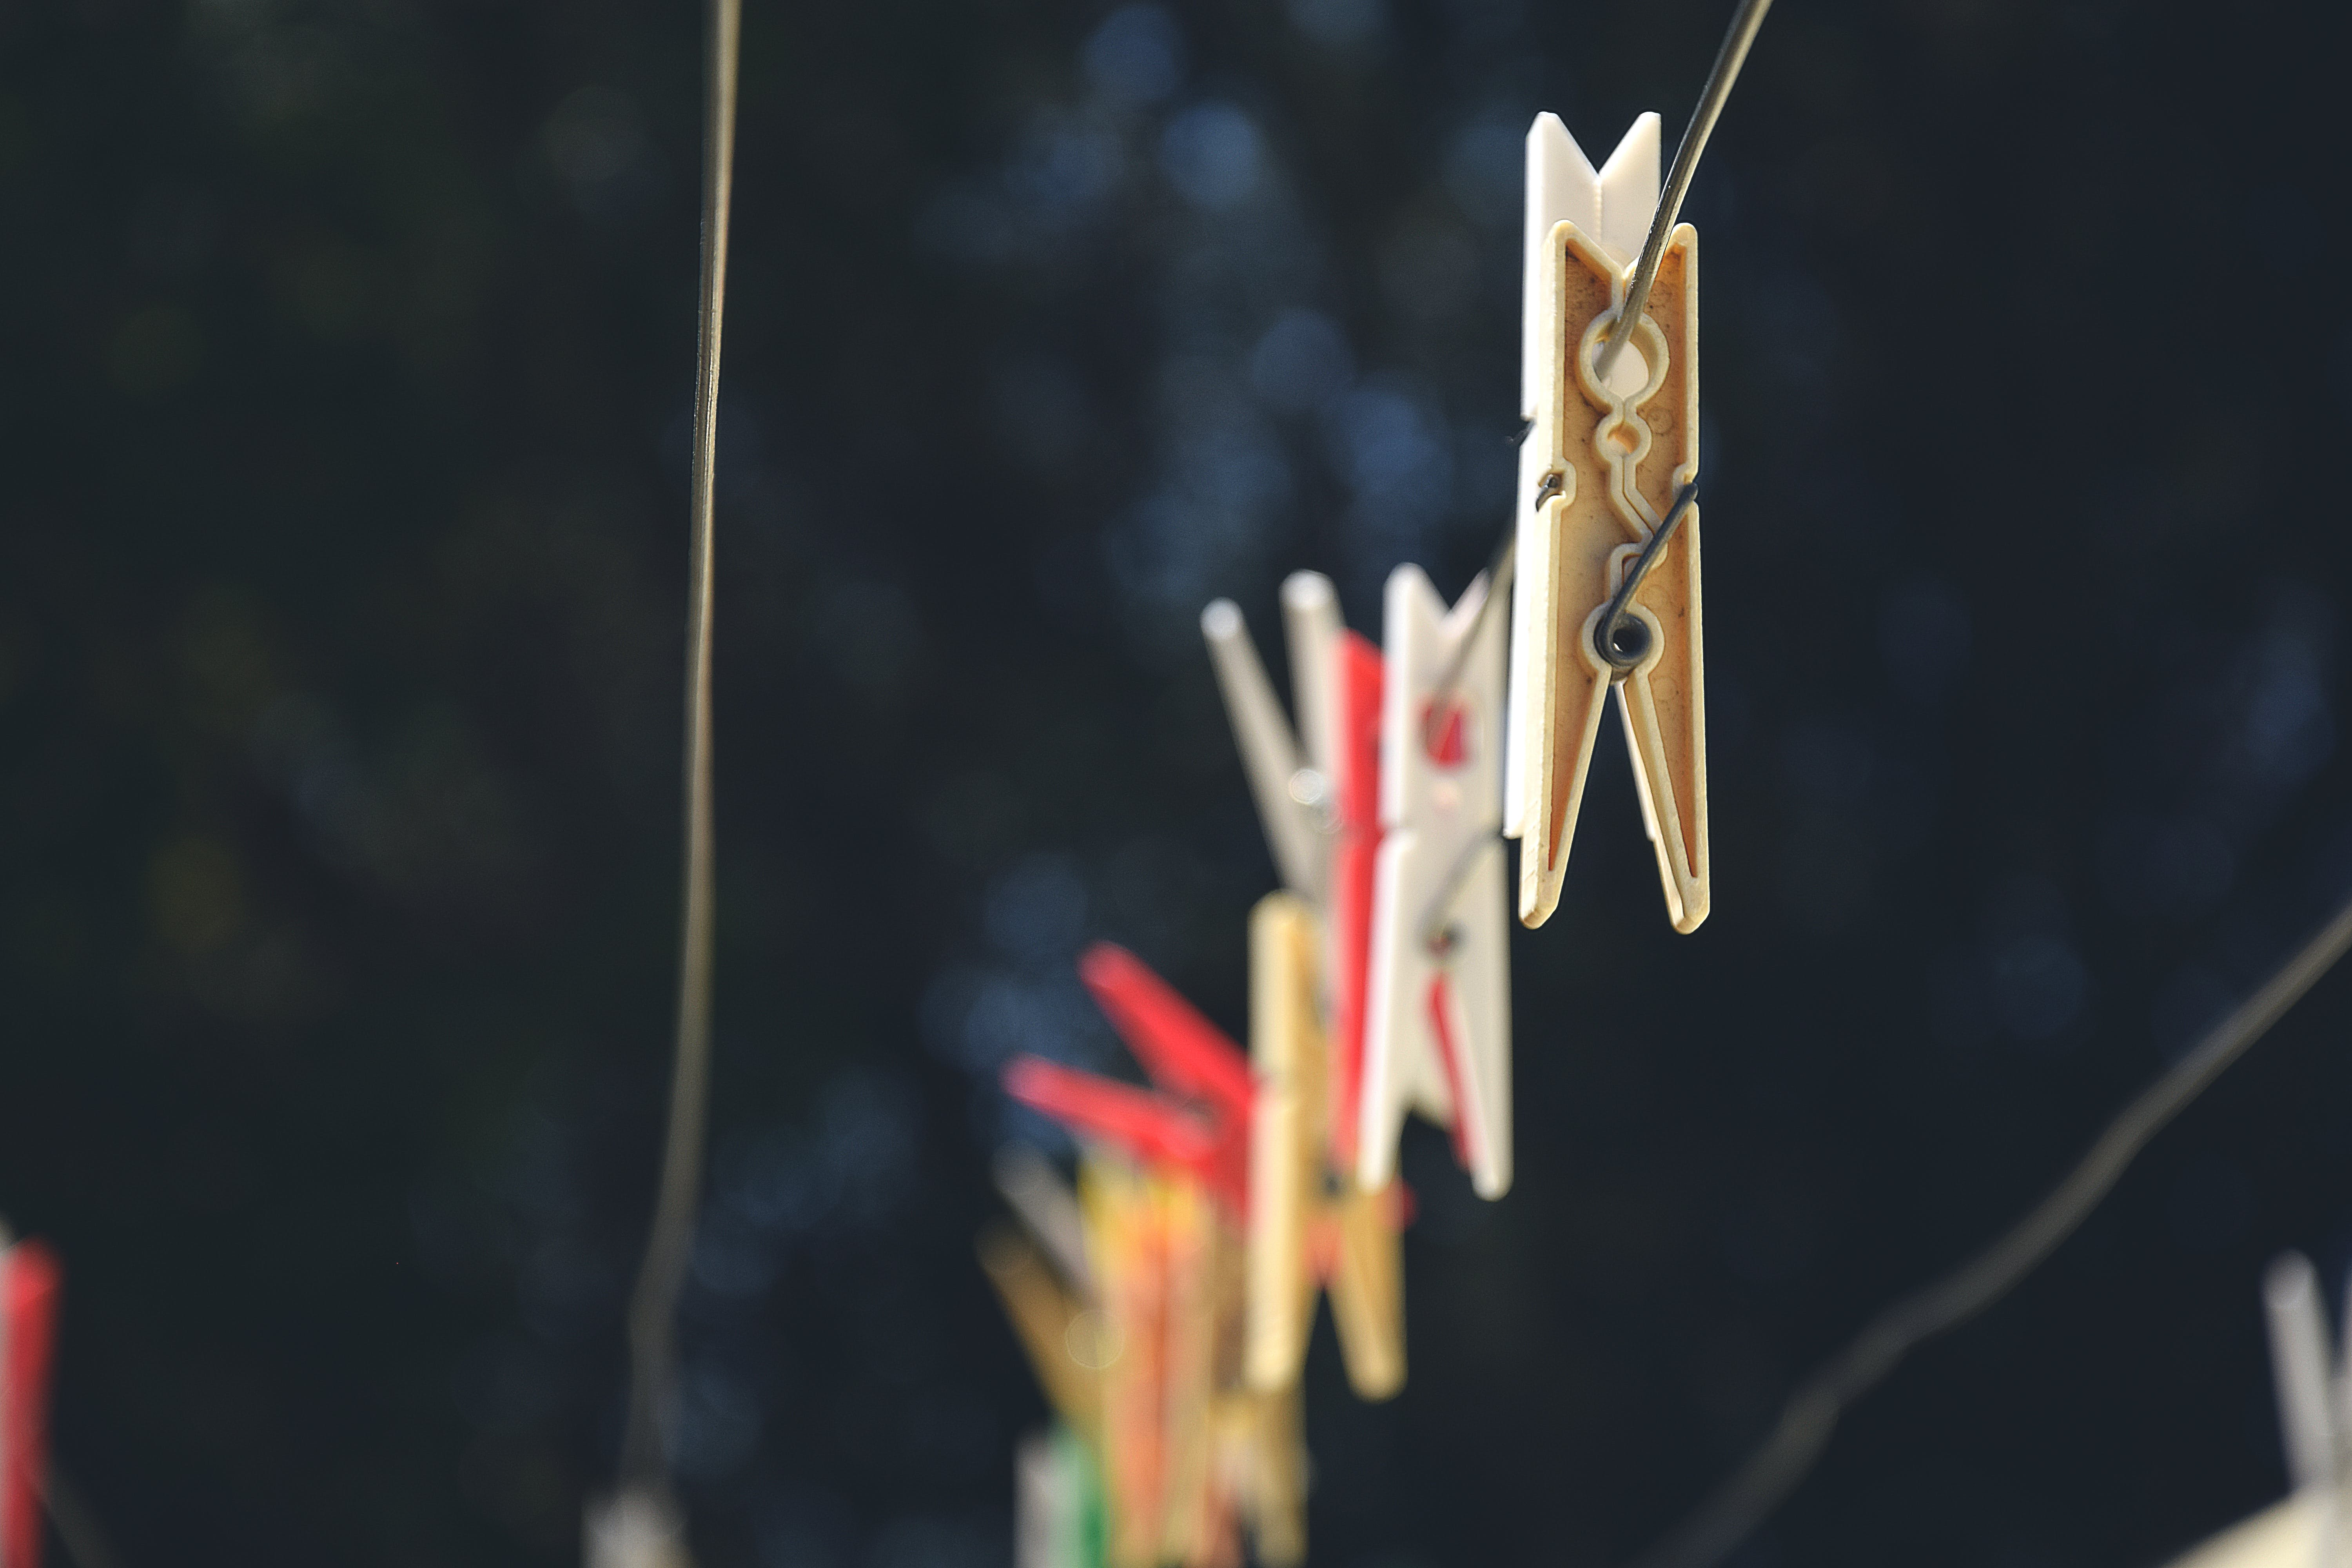 clothesline, clothespins, depth of field